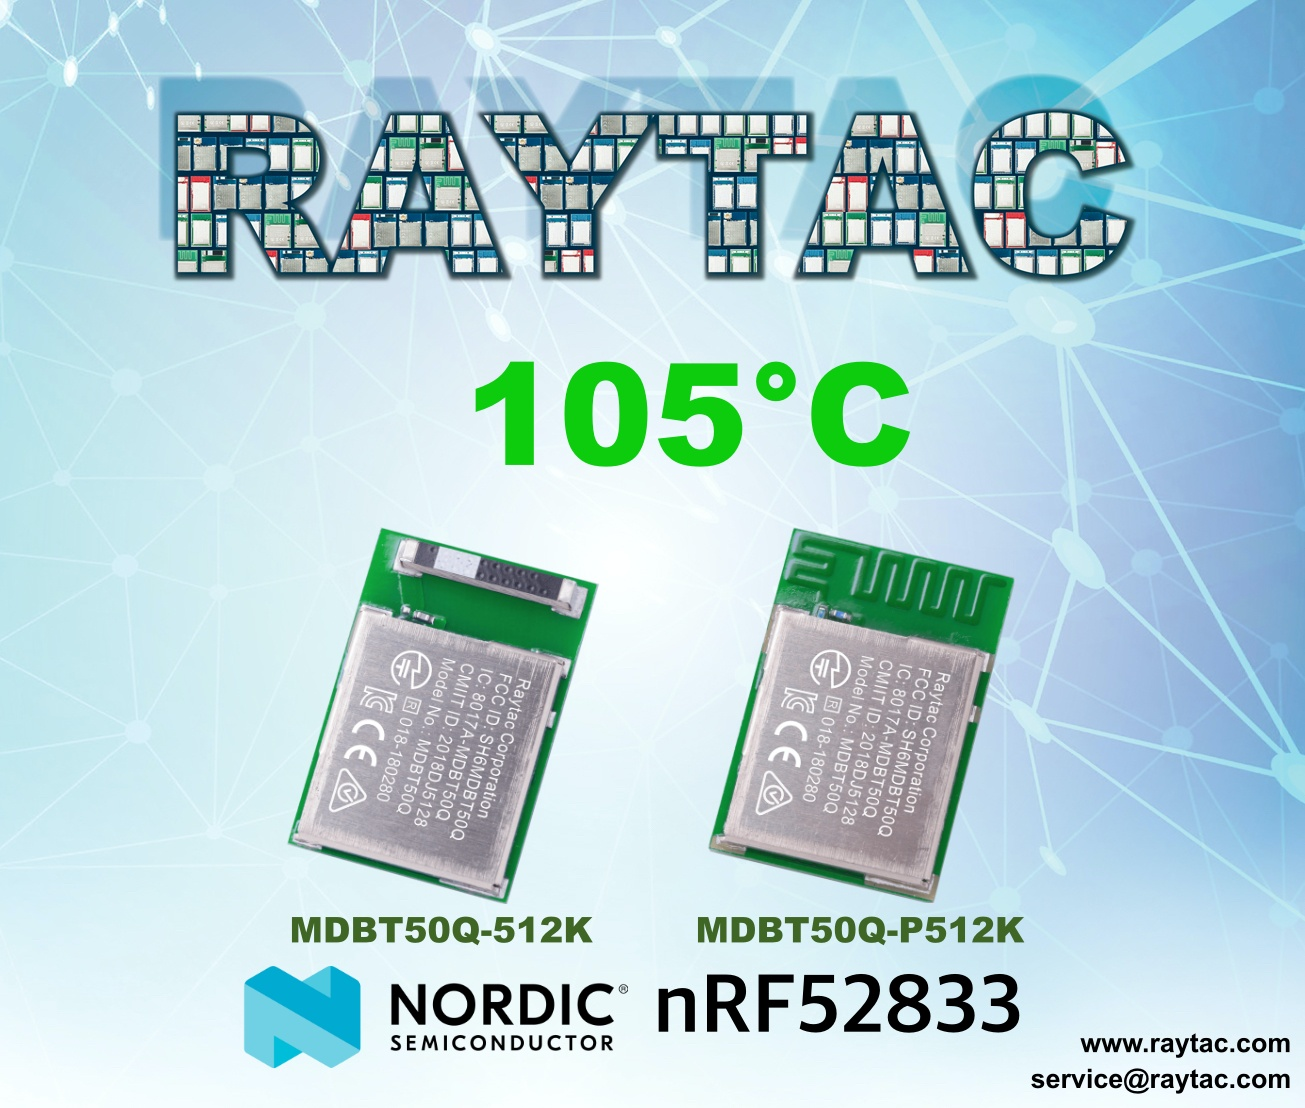 nRF52833 Module MDBT50Q By Raytac Has Extended To 105°C Ambient Temperature